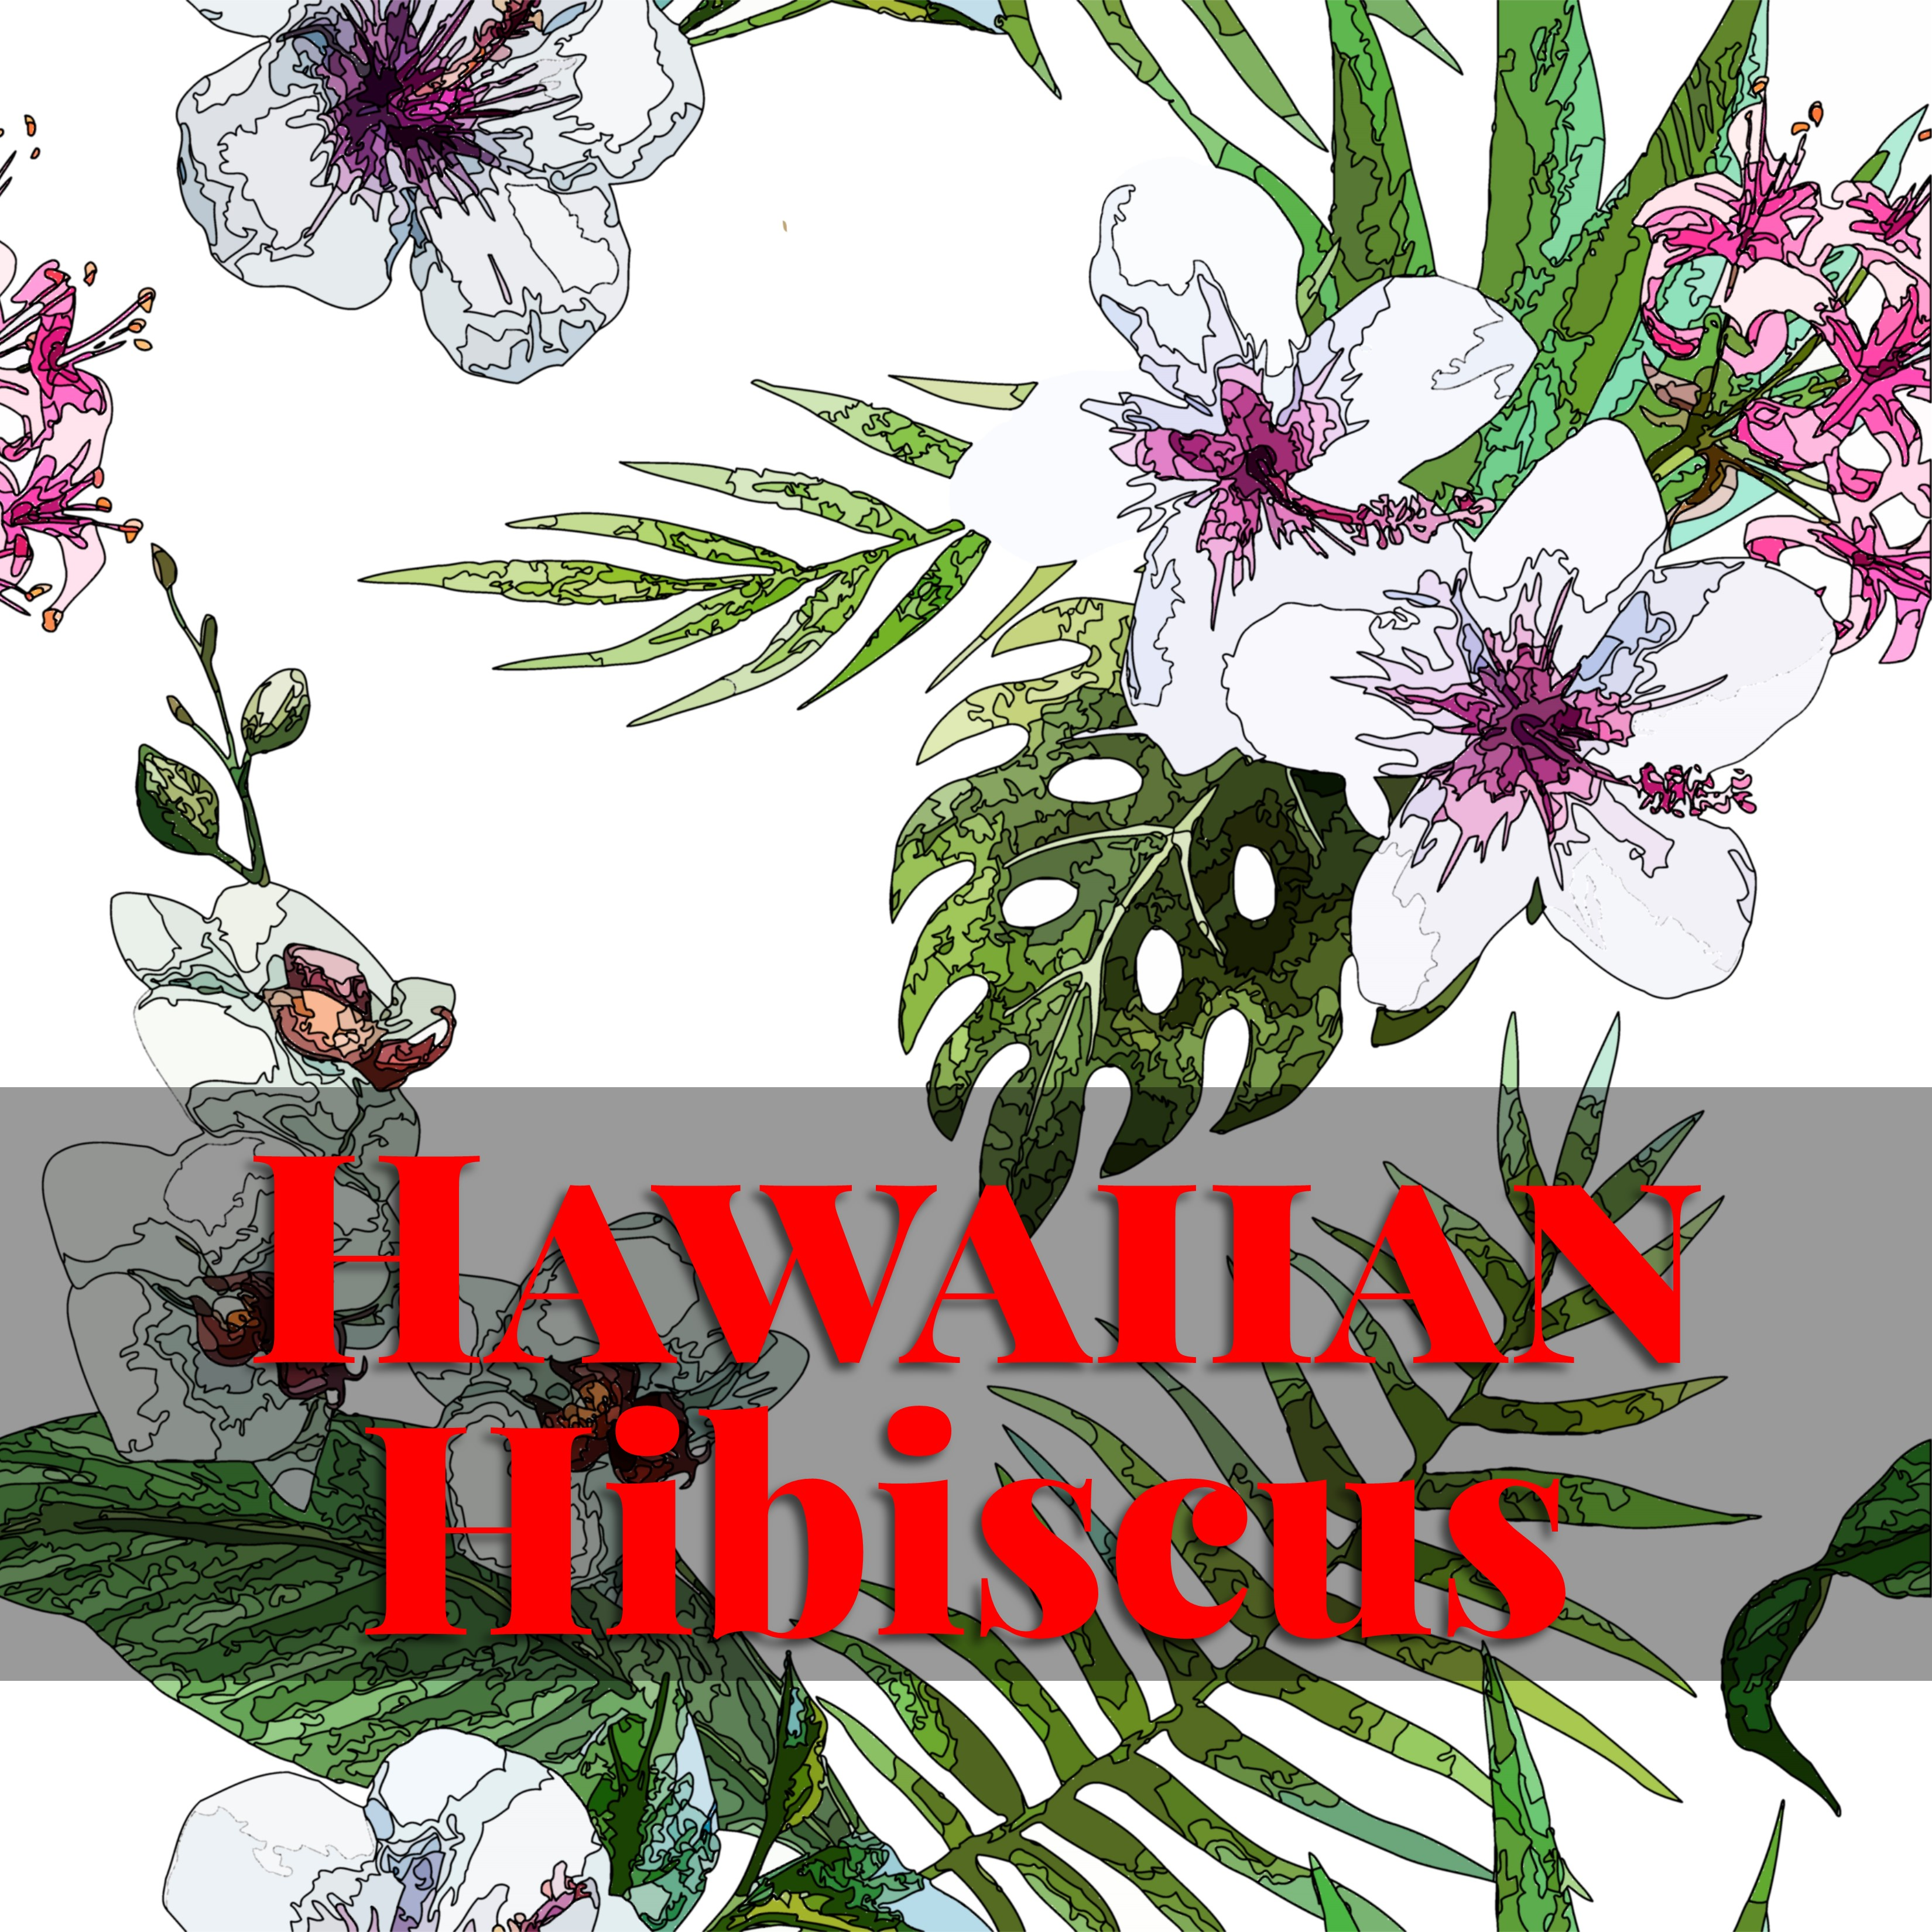 Adult coloring book | Hawaiian Heritage Press | Page 2